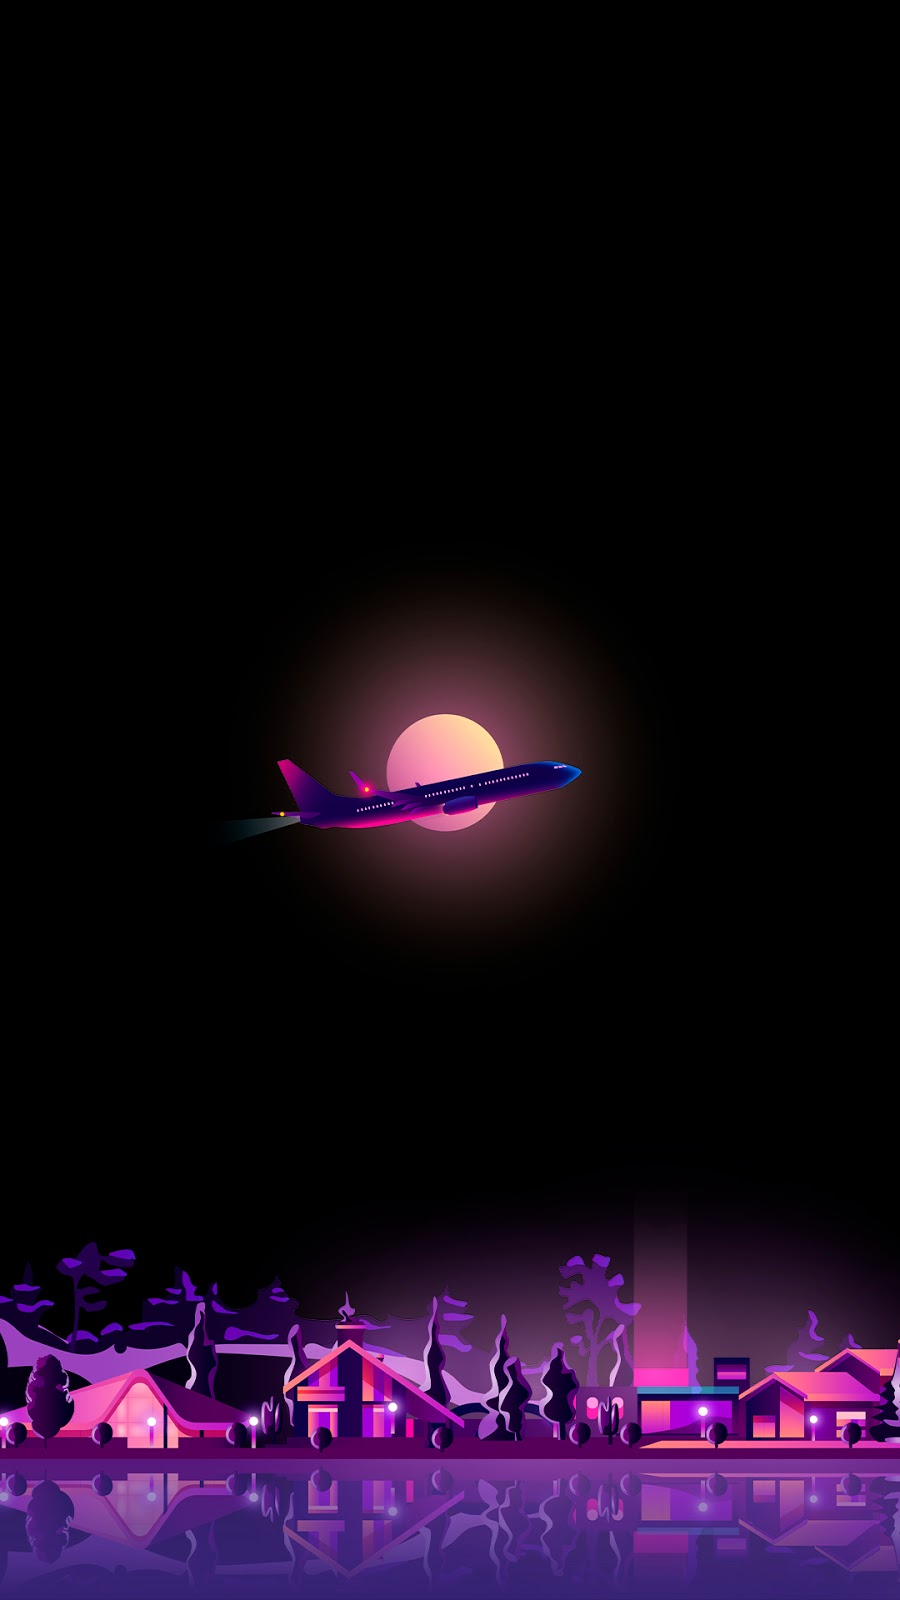 amoled wallpaper a flight above a city main color is purple in hd 1080p to use as phone wallpaper